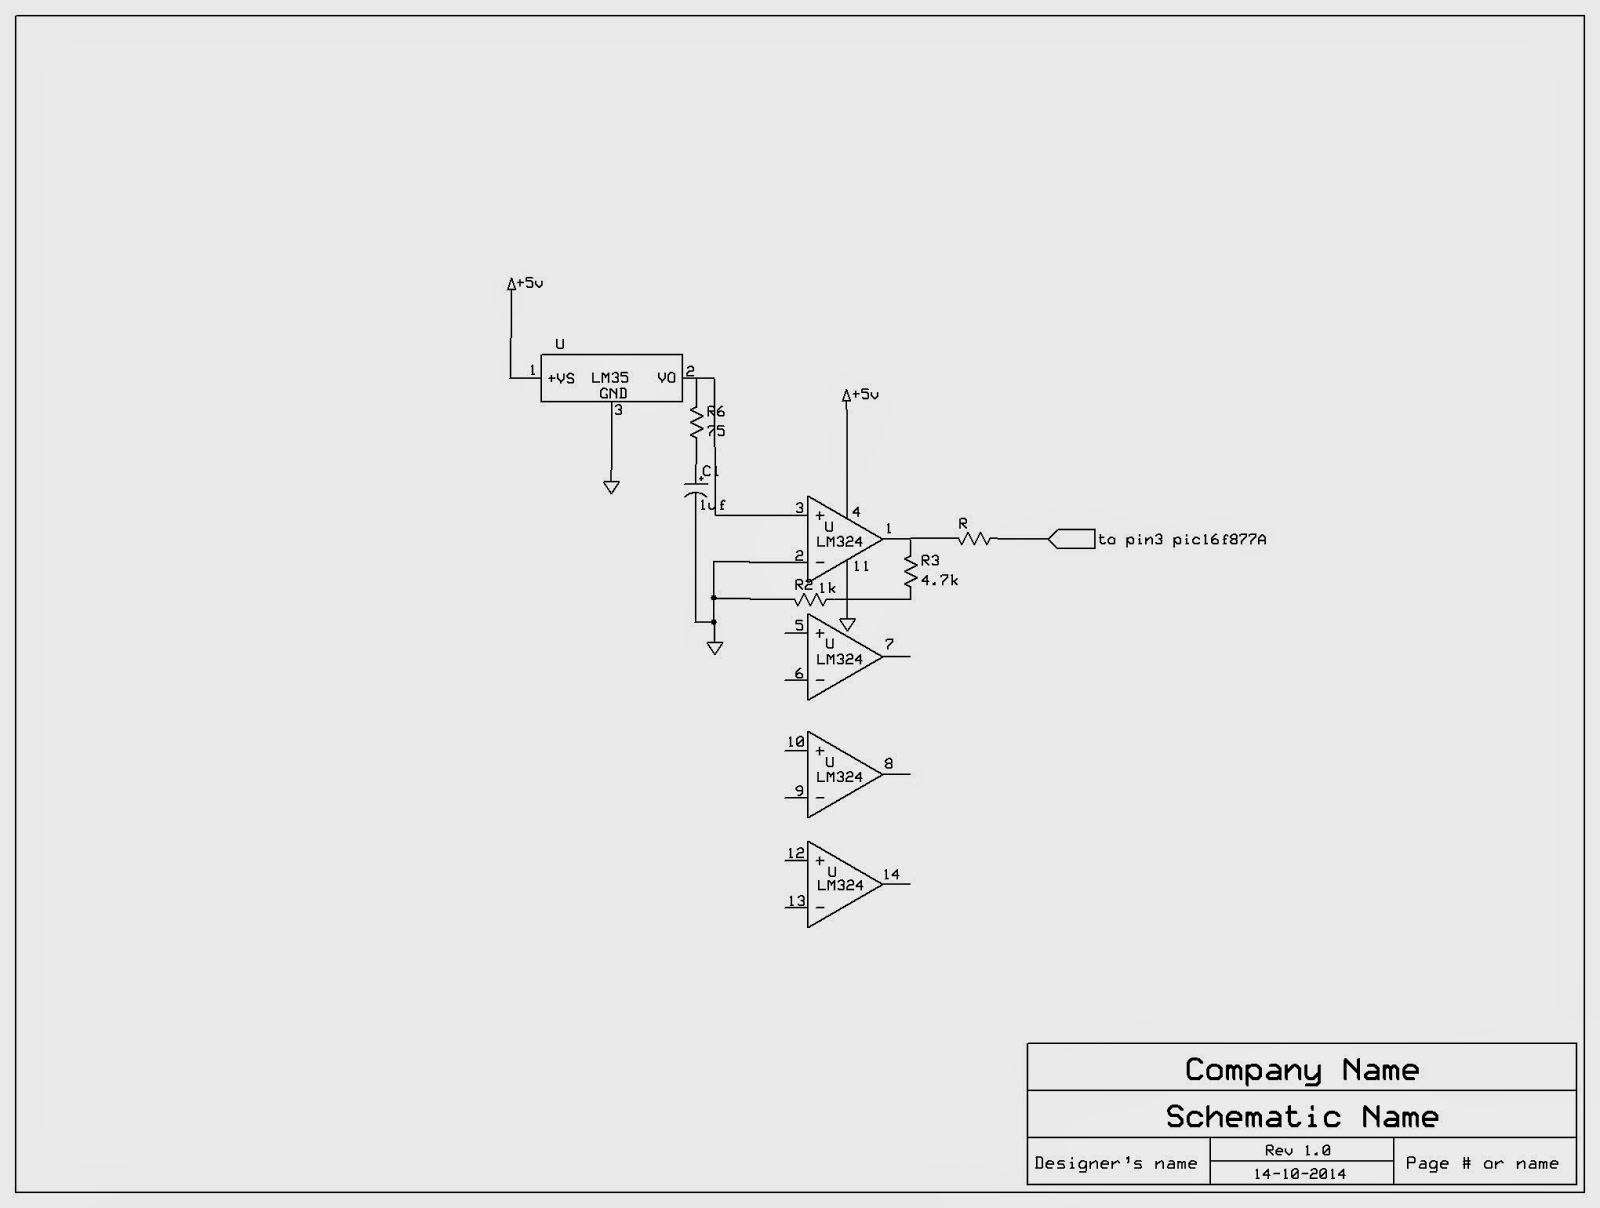 Wireless Temperature Sensing Using Xbee Zigbee Pic16f877a Projects Circuit Diagram Of Module I Have Designed An Amplifier With Gain Approx 6 The Lm324 Based Sensor Circuitry Is As Below